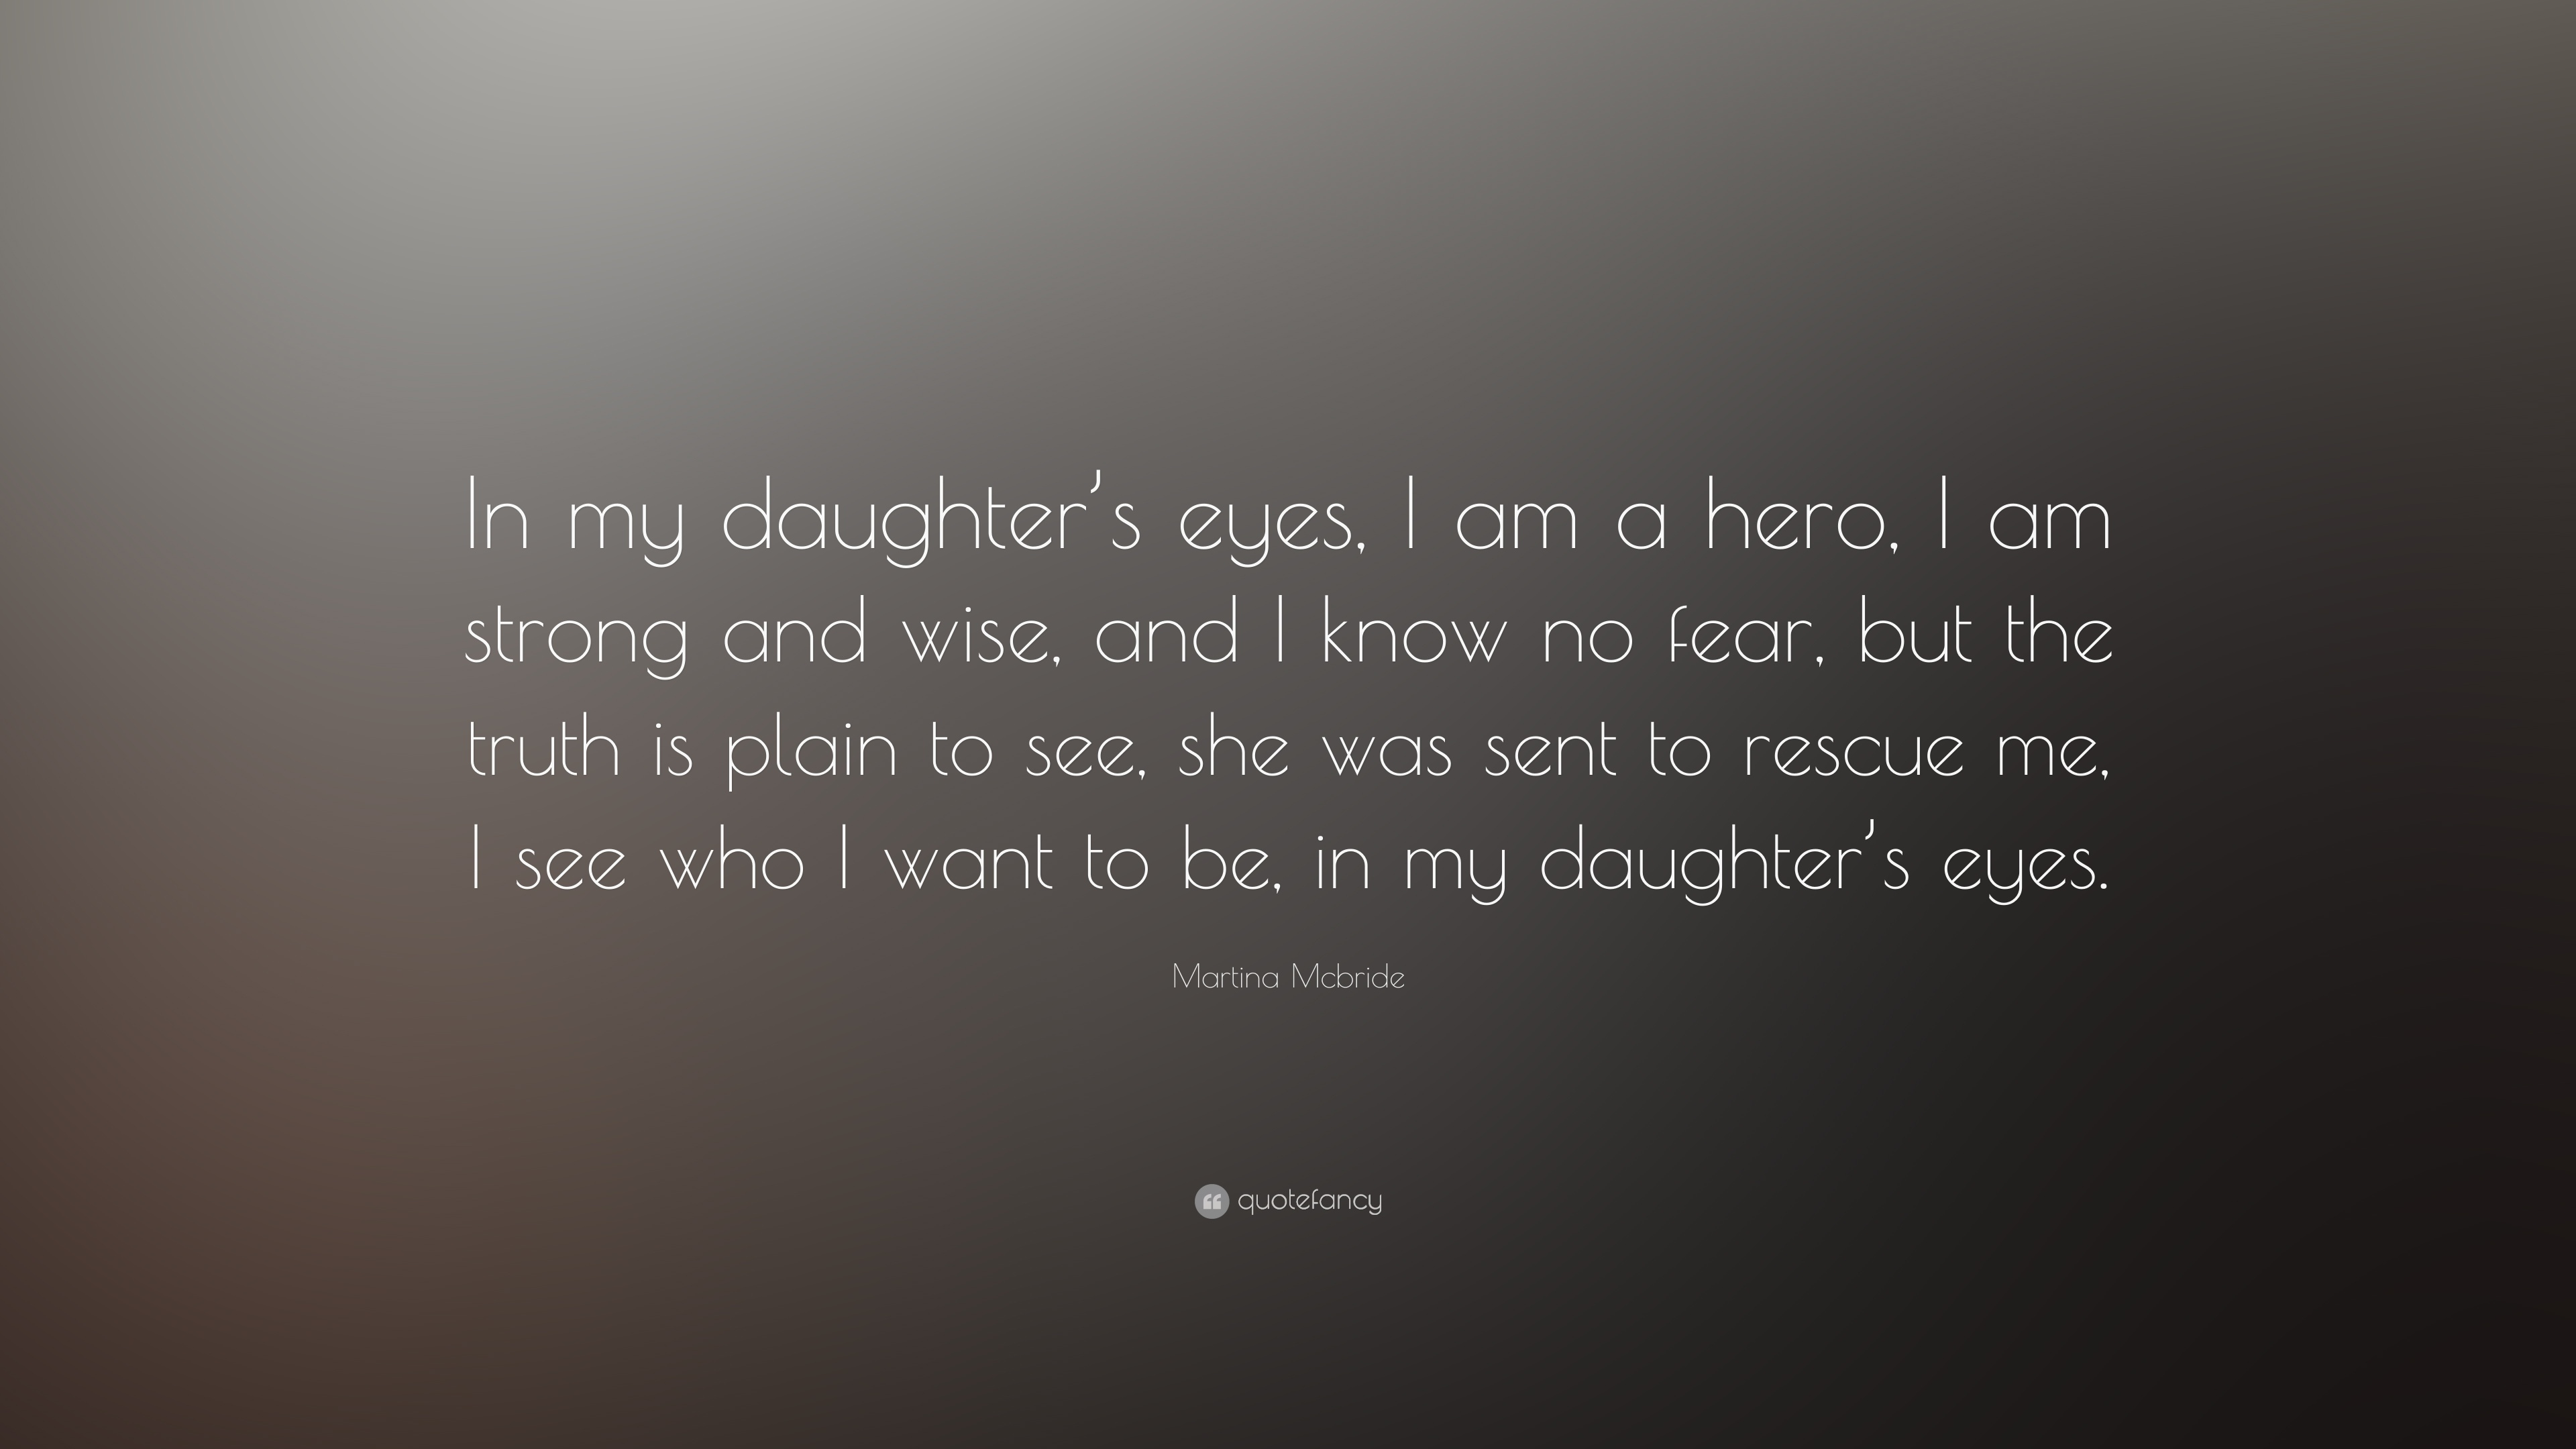 Martina Mcbride Quote In My Daughters Eyes I Am A Hero I Am